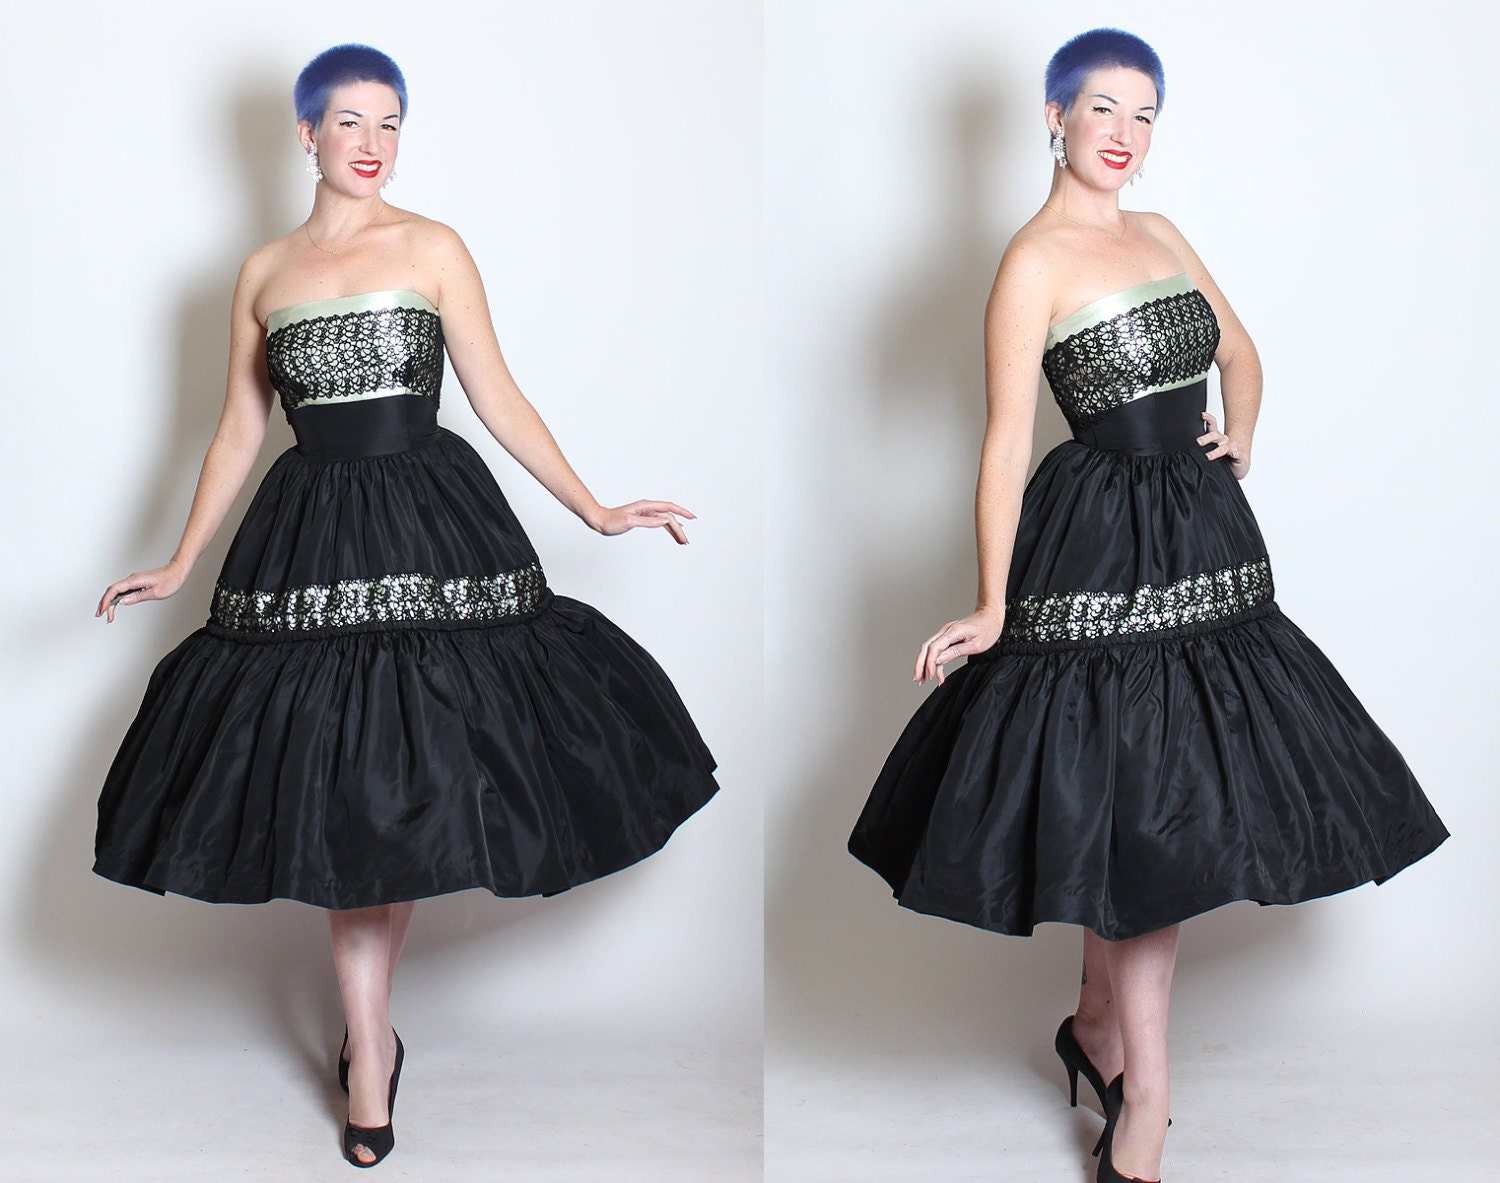 STUNNING 1950s New Look Strapless Satin & Taffeta Couture Party Dress w Shelf Bust / Floral Spiderweb Lace Details by Young American Deb - M